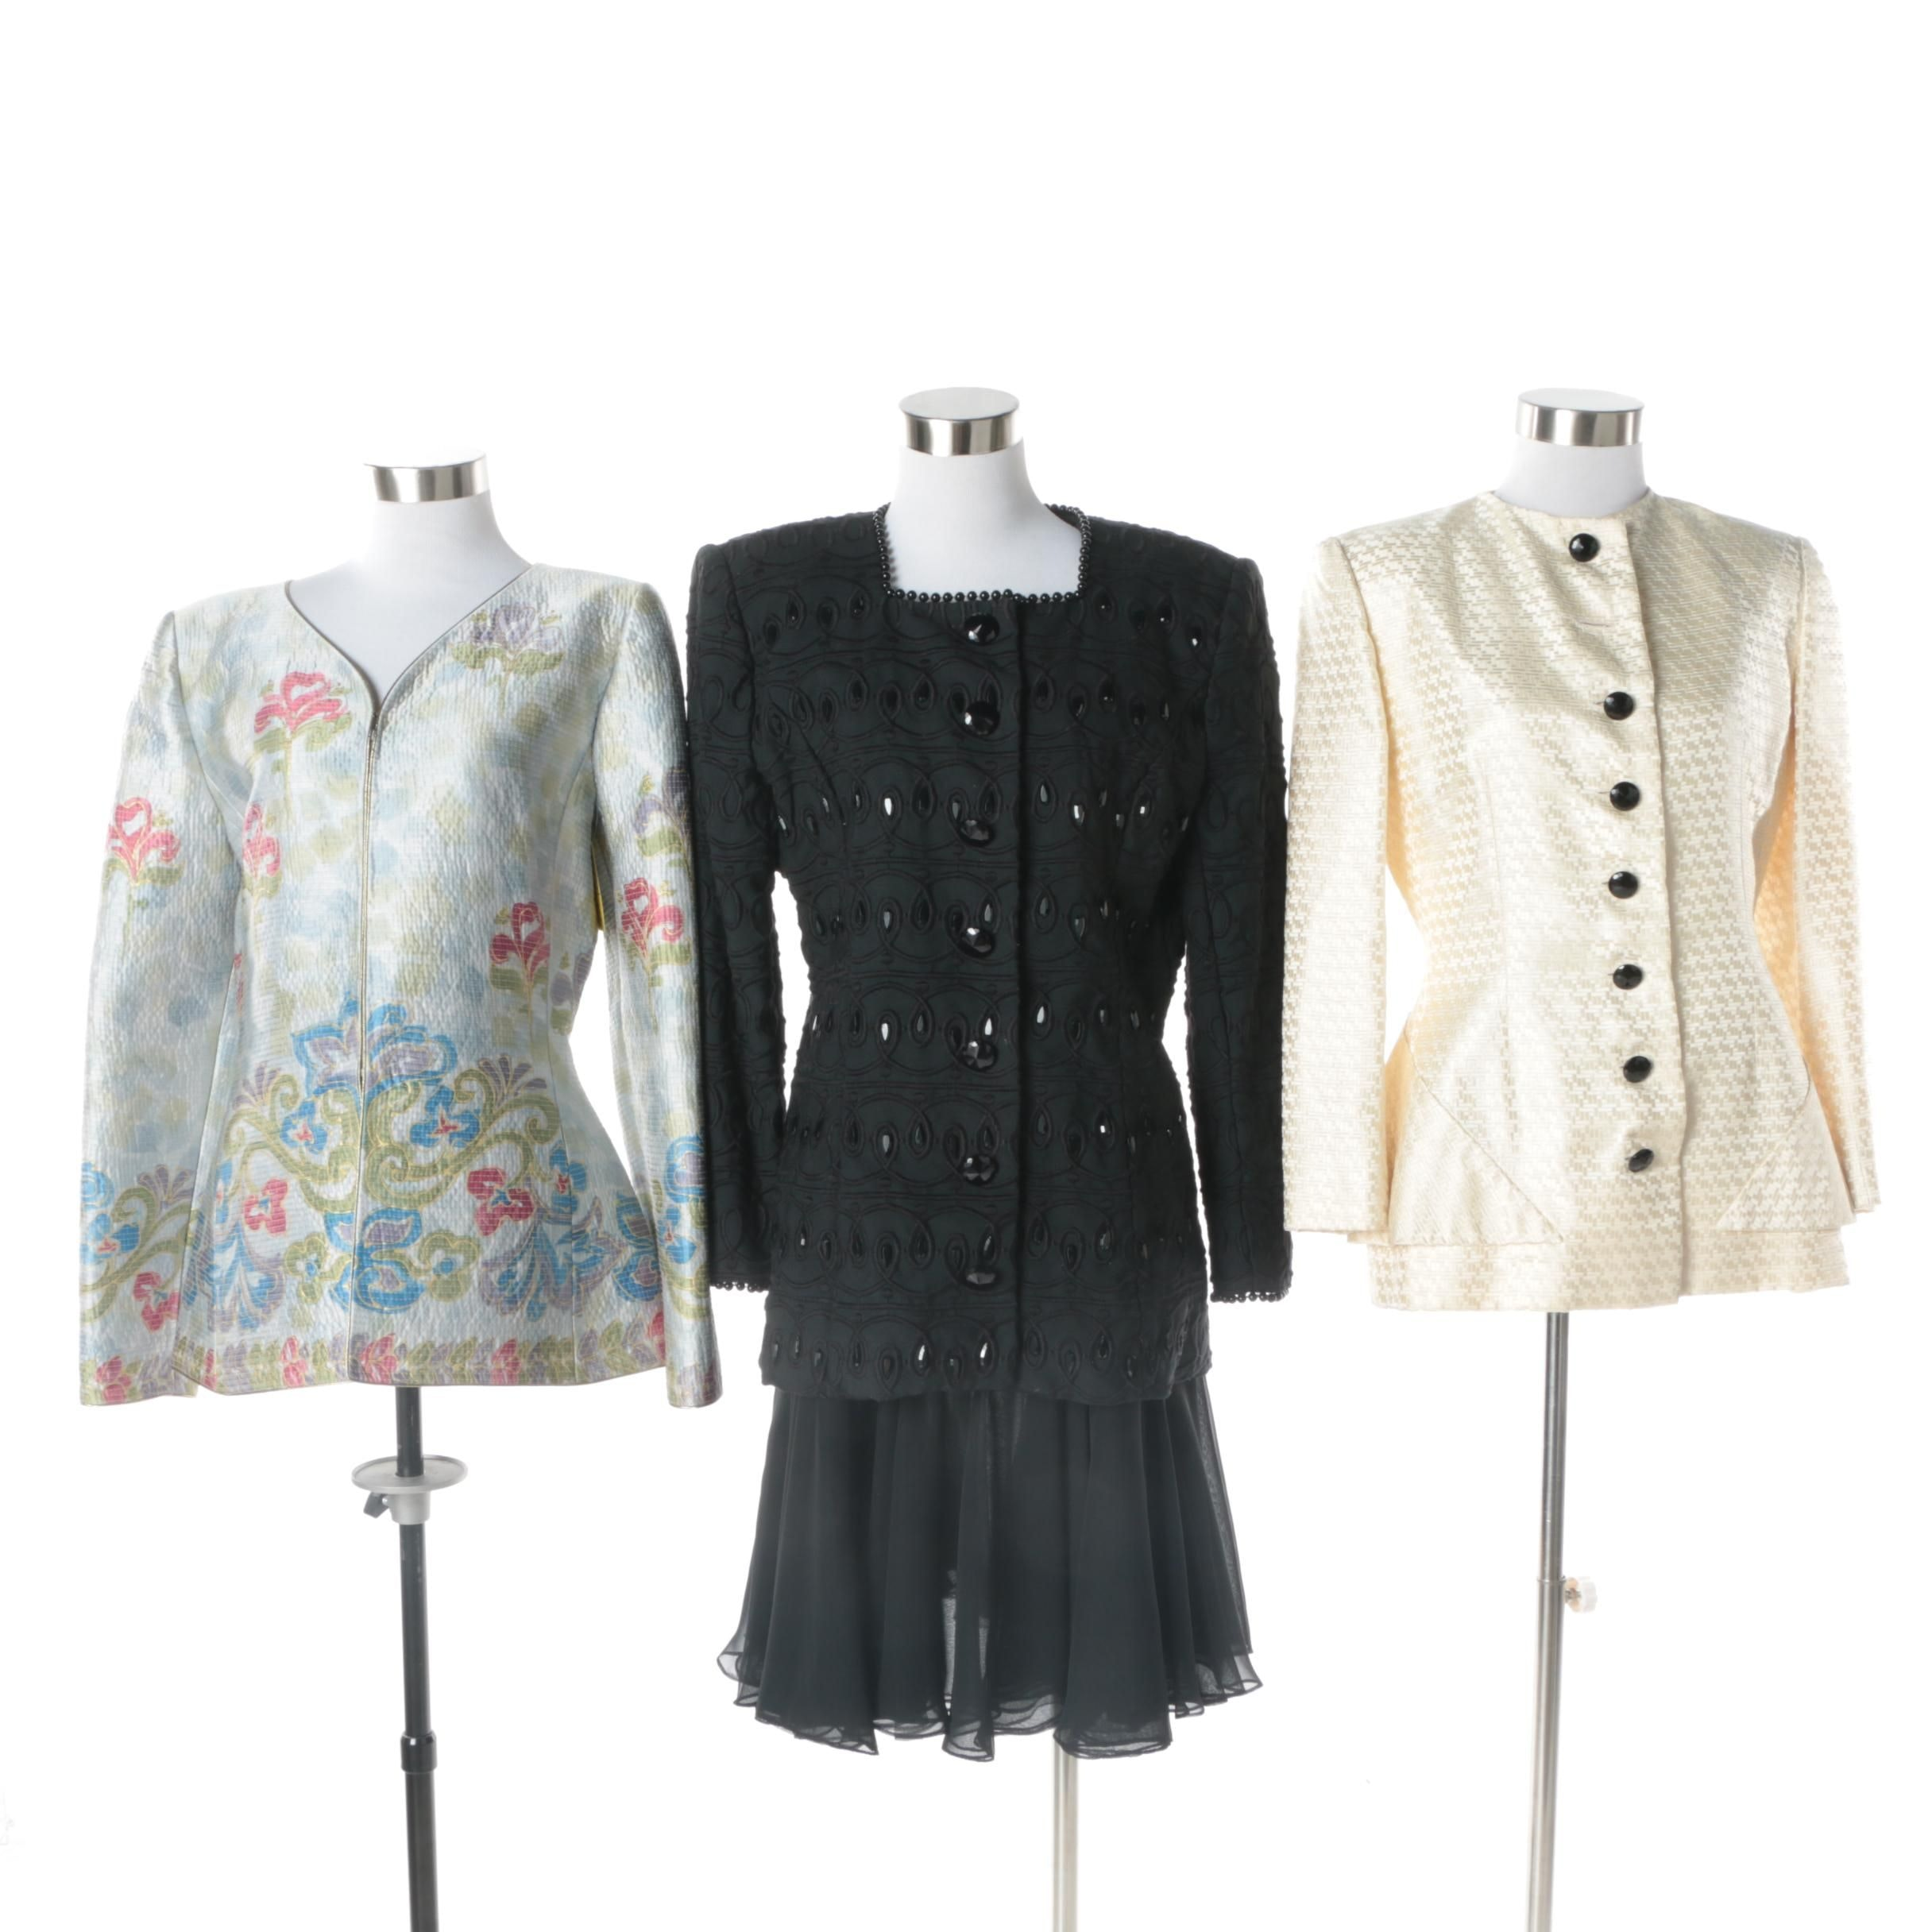 1980s Victor Costa Skirt Suit, Bill Blass and Mary McFadden Jackets with Silk